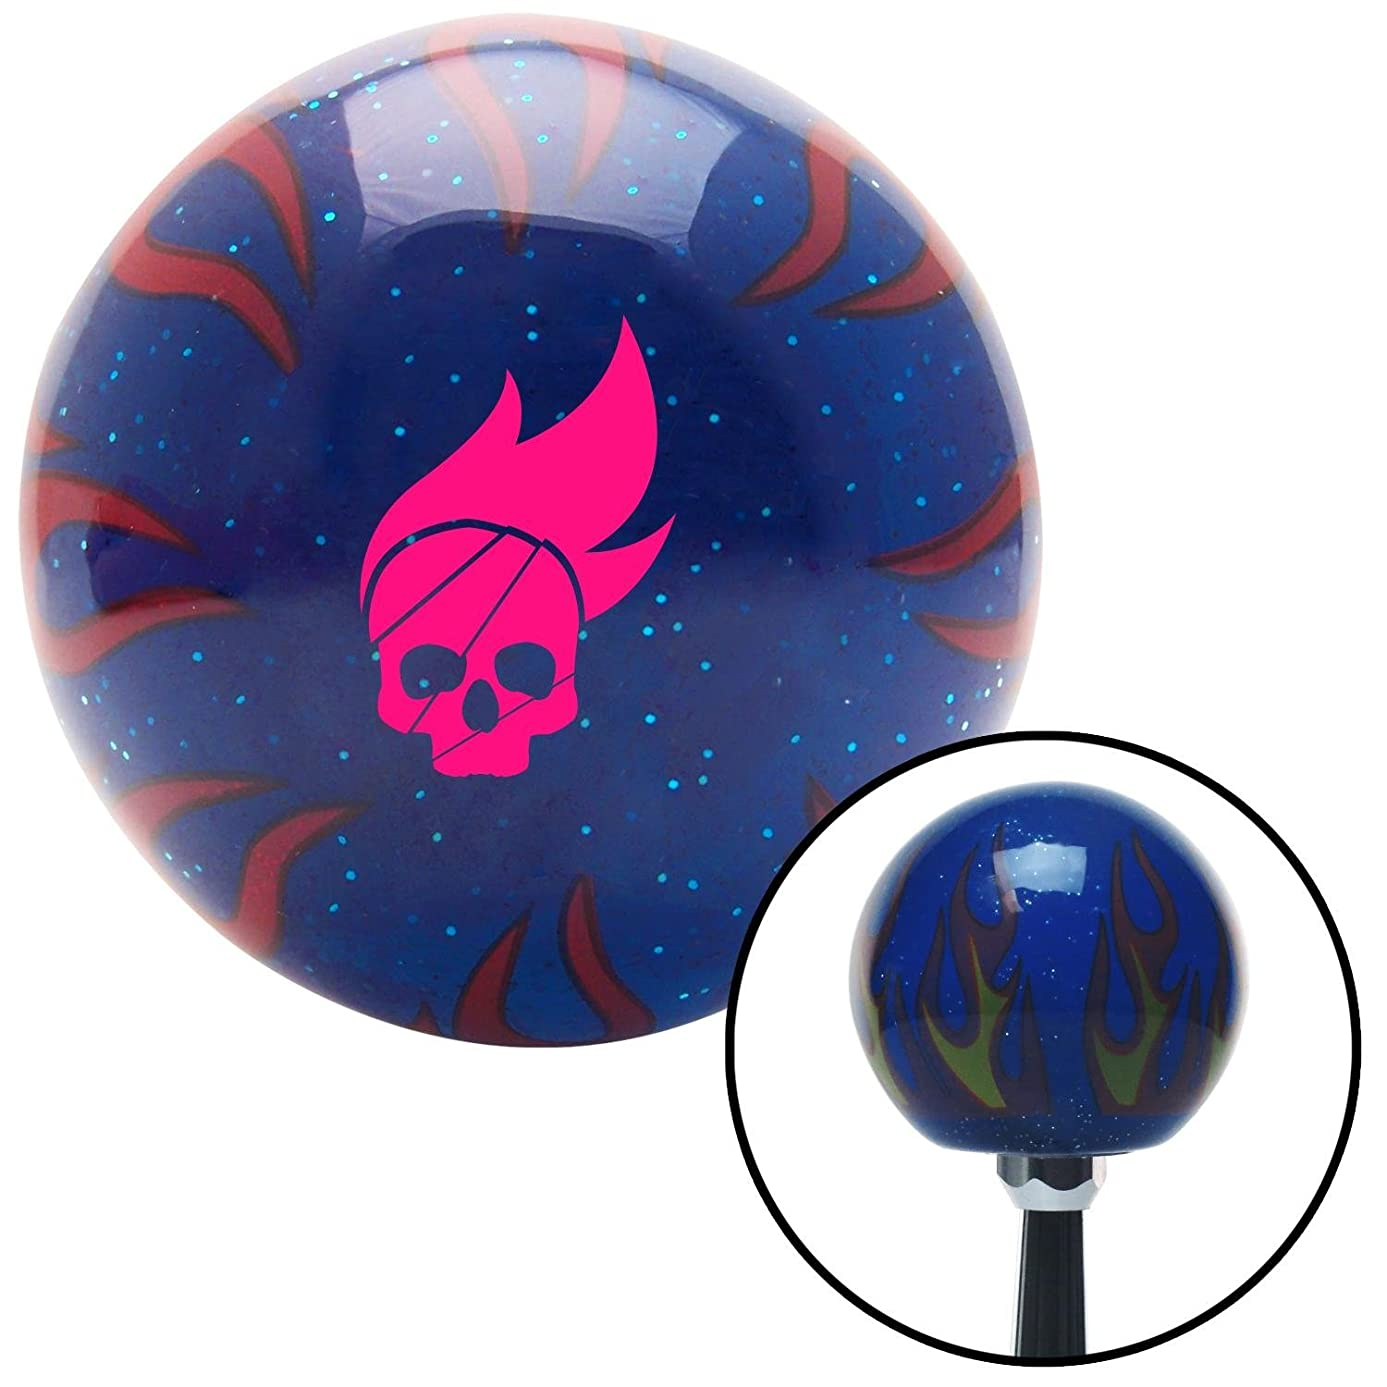 American Shifter 247352 Blue Flame Metal Flake Shift Knob with M16 x 1.5 Insert (Pink Skull Flame)